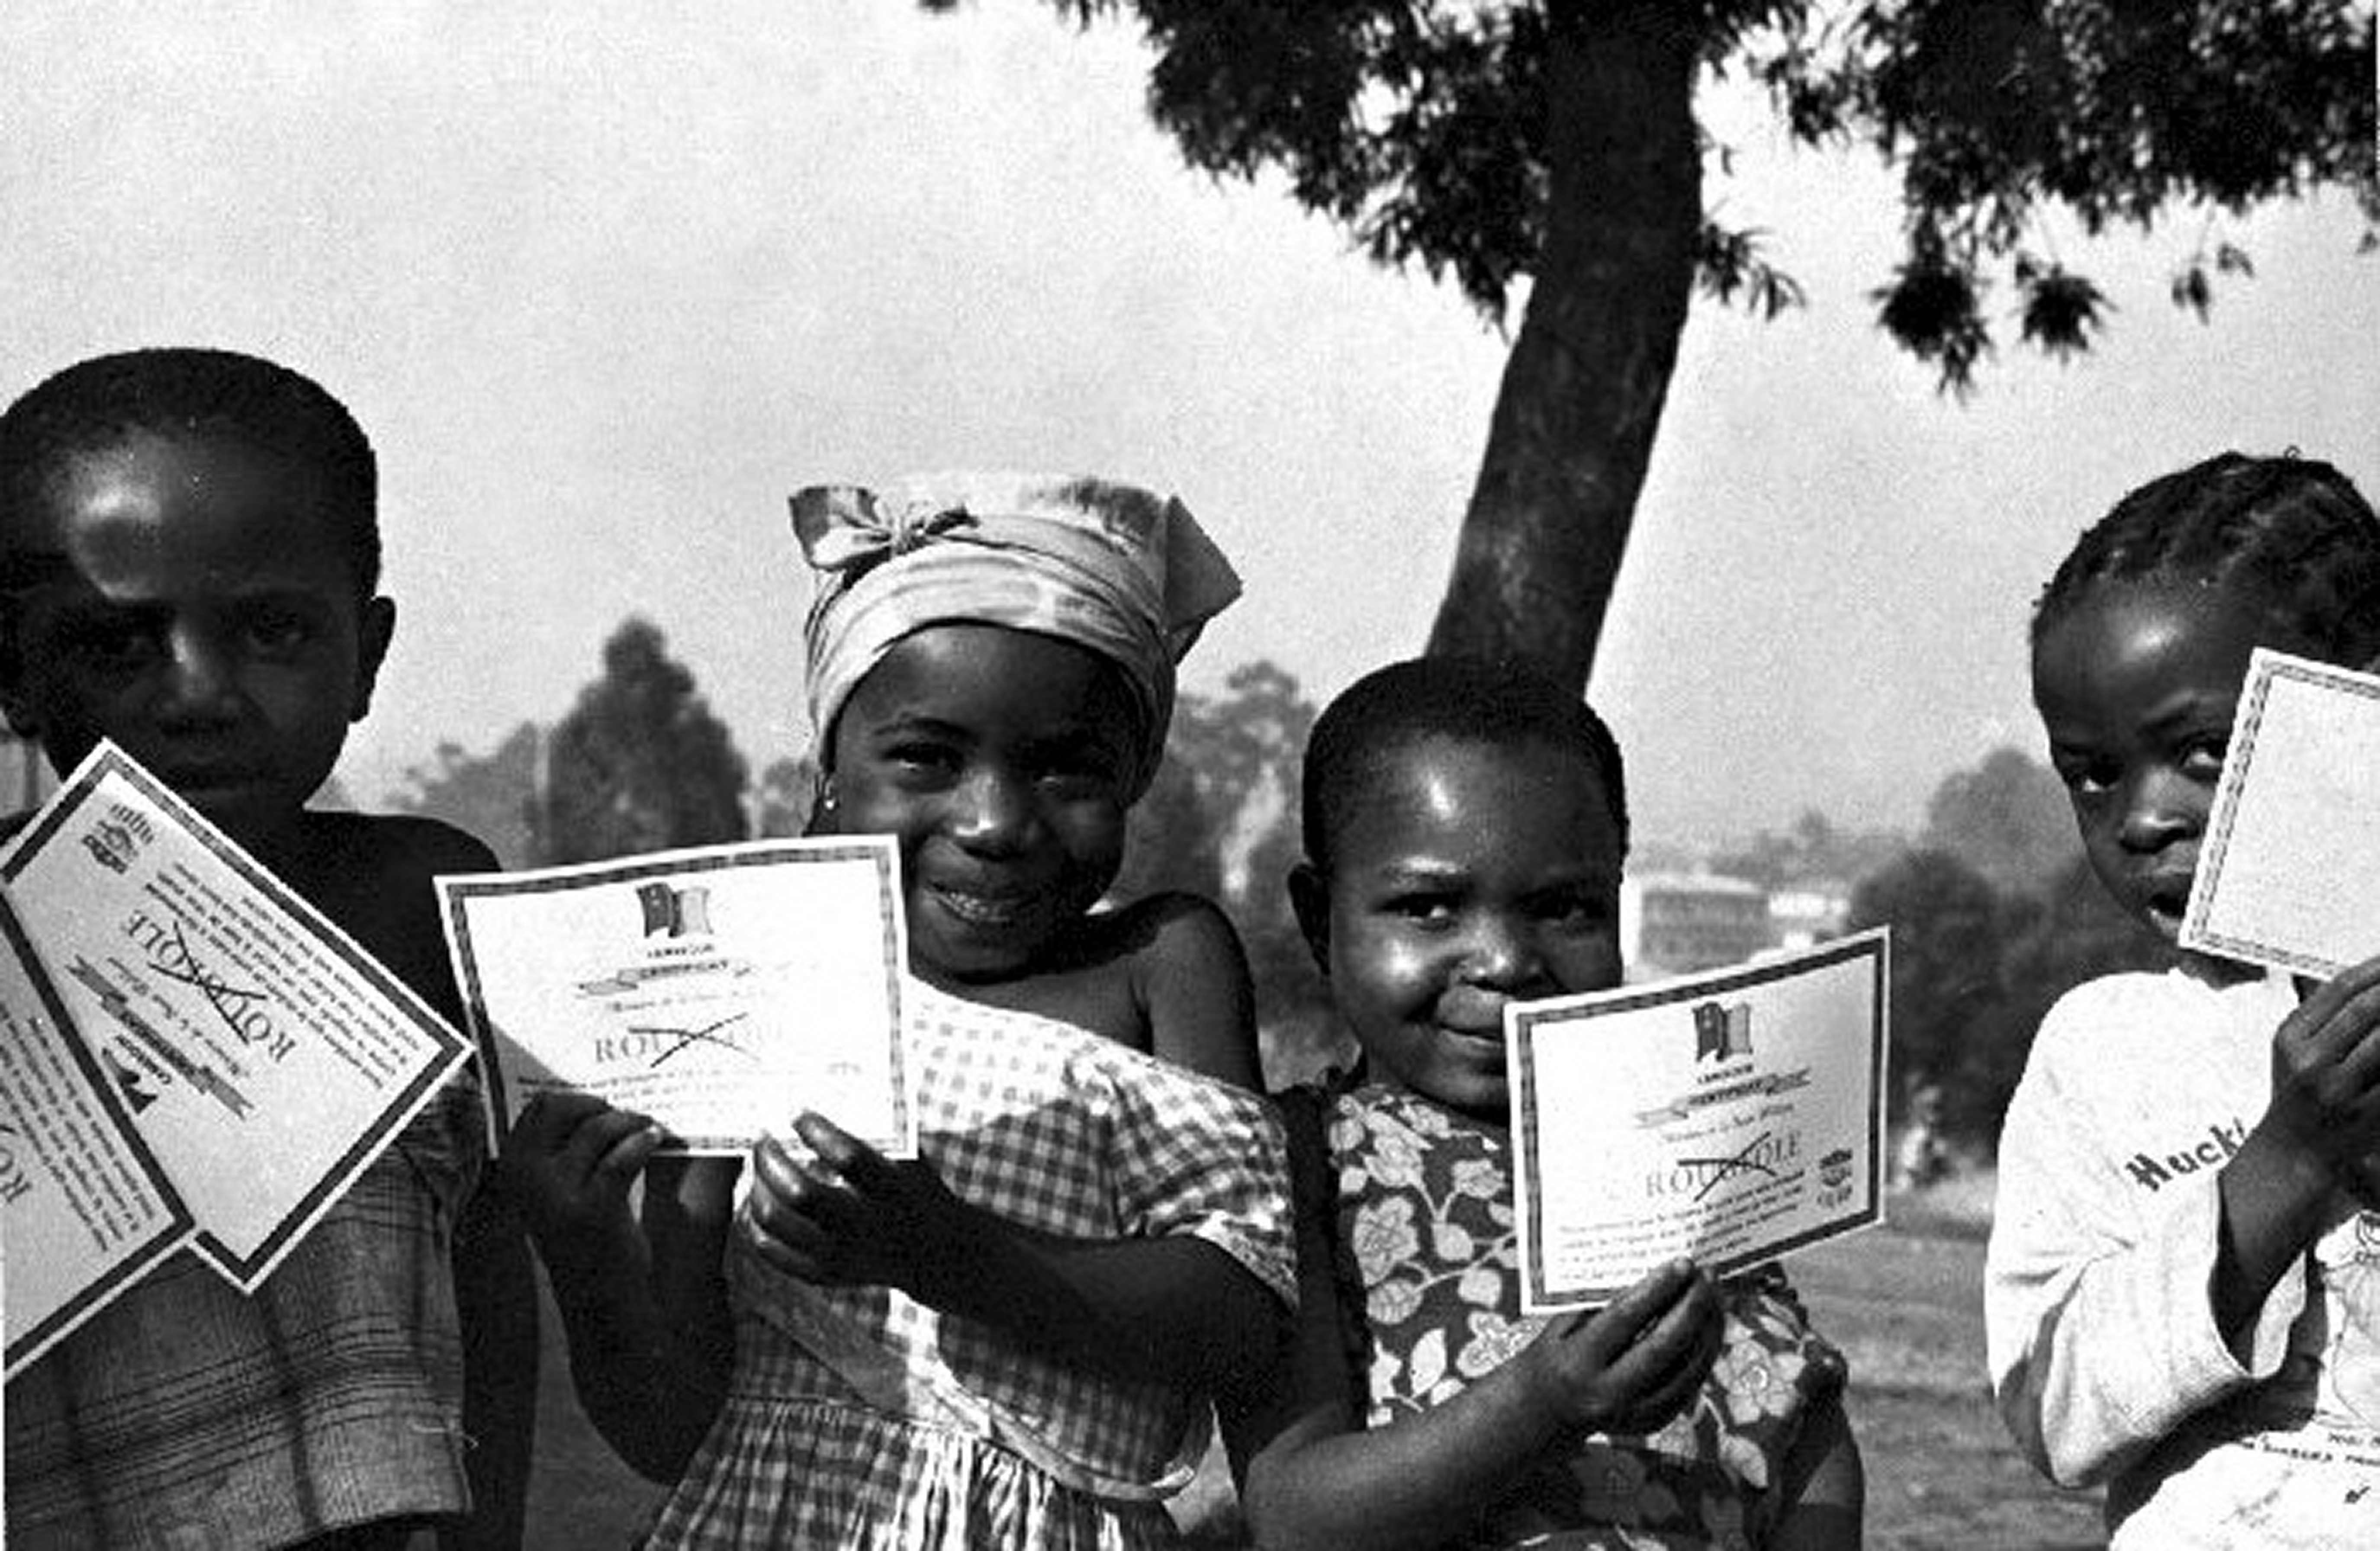 Children holding smallpox vaccination certificates